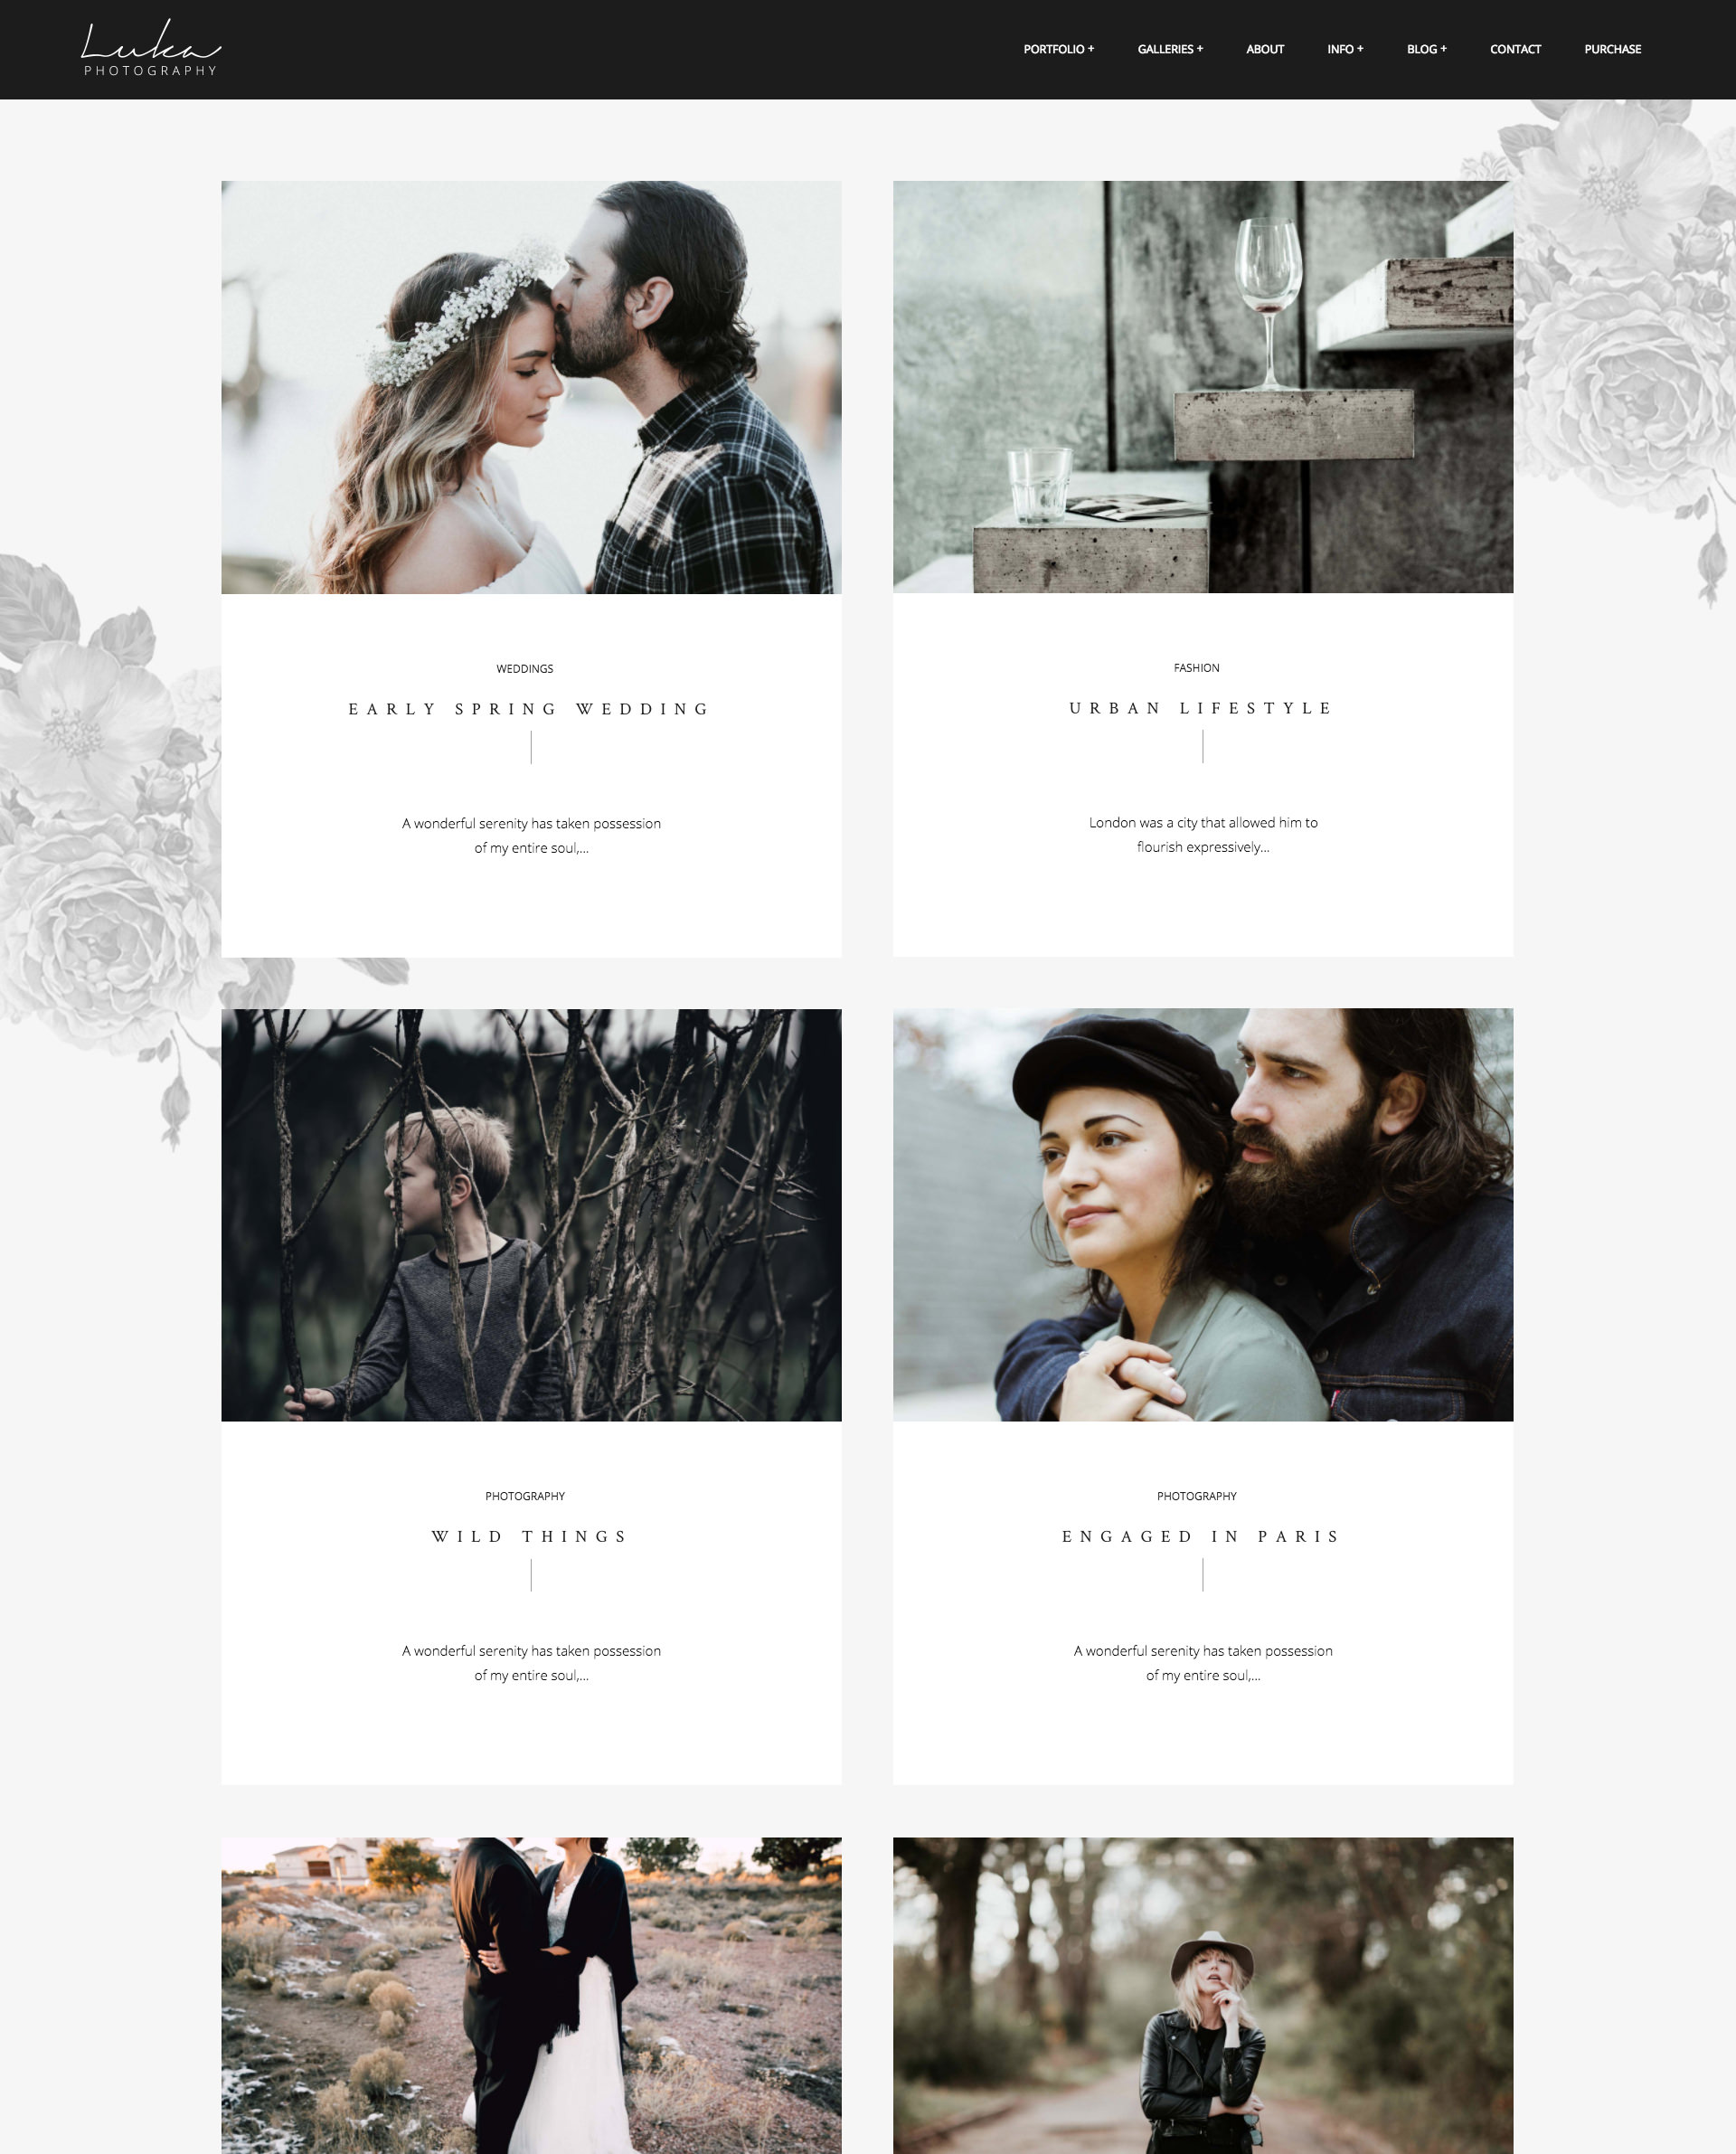 Luka Portfolio Theme for Photographers - elegant, romantic design